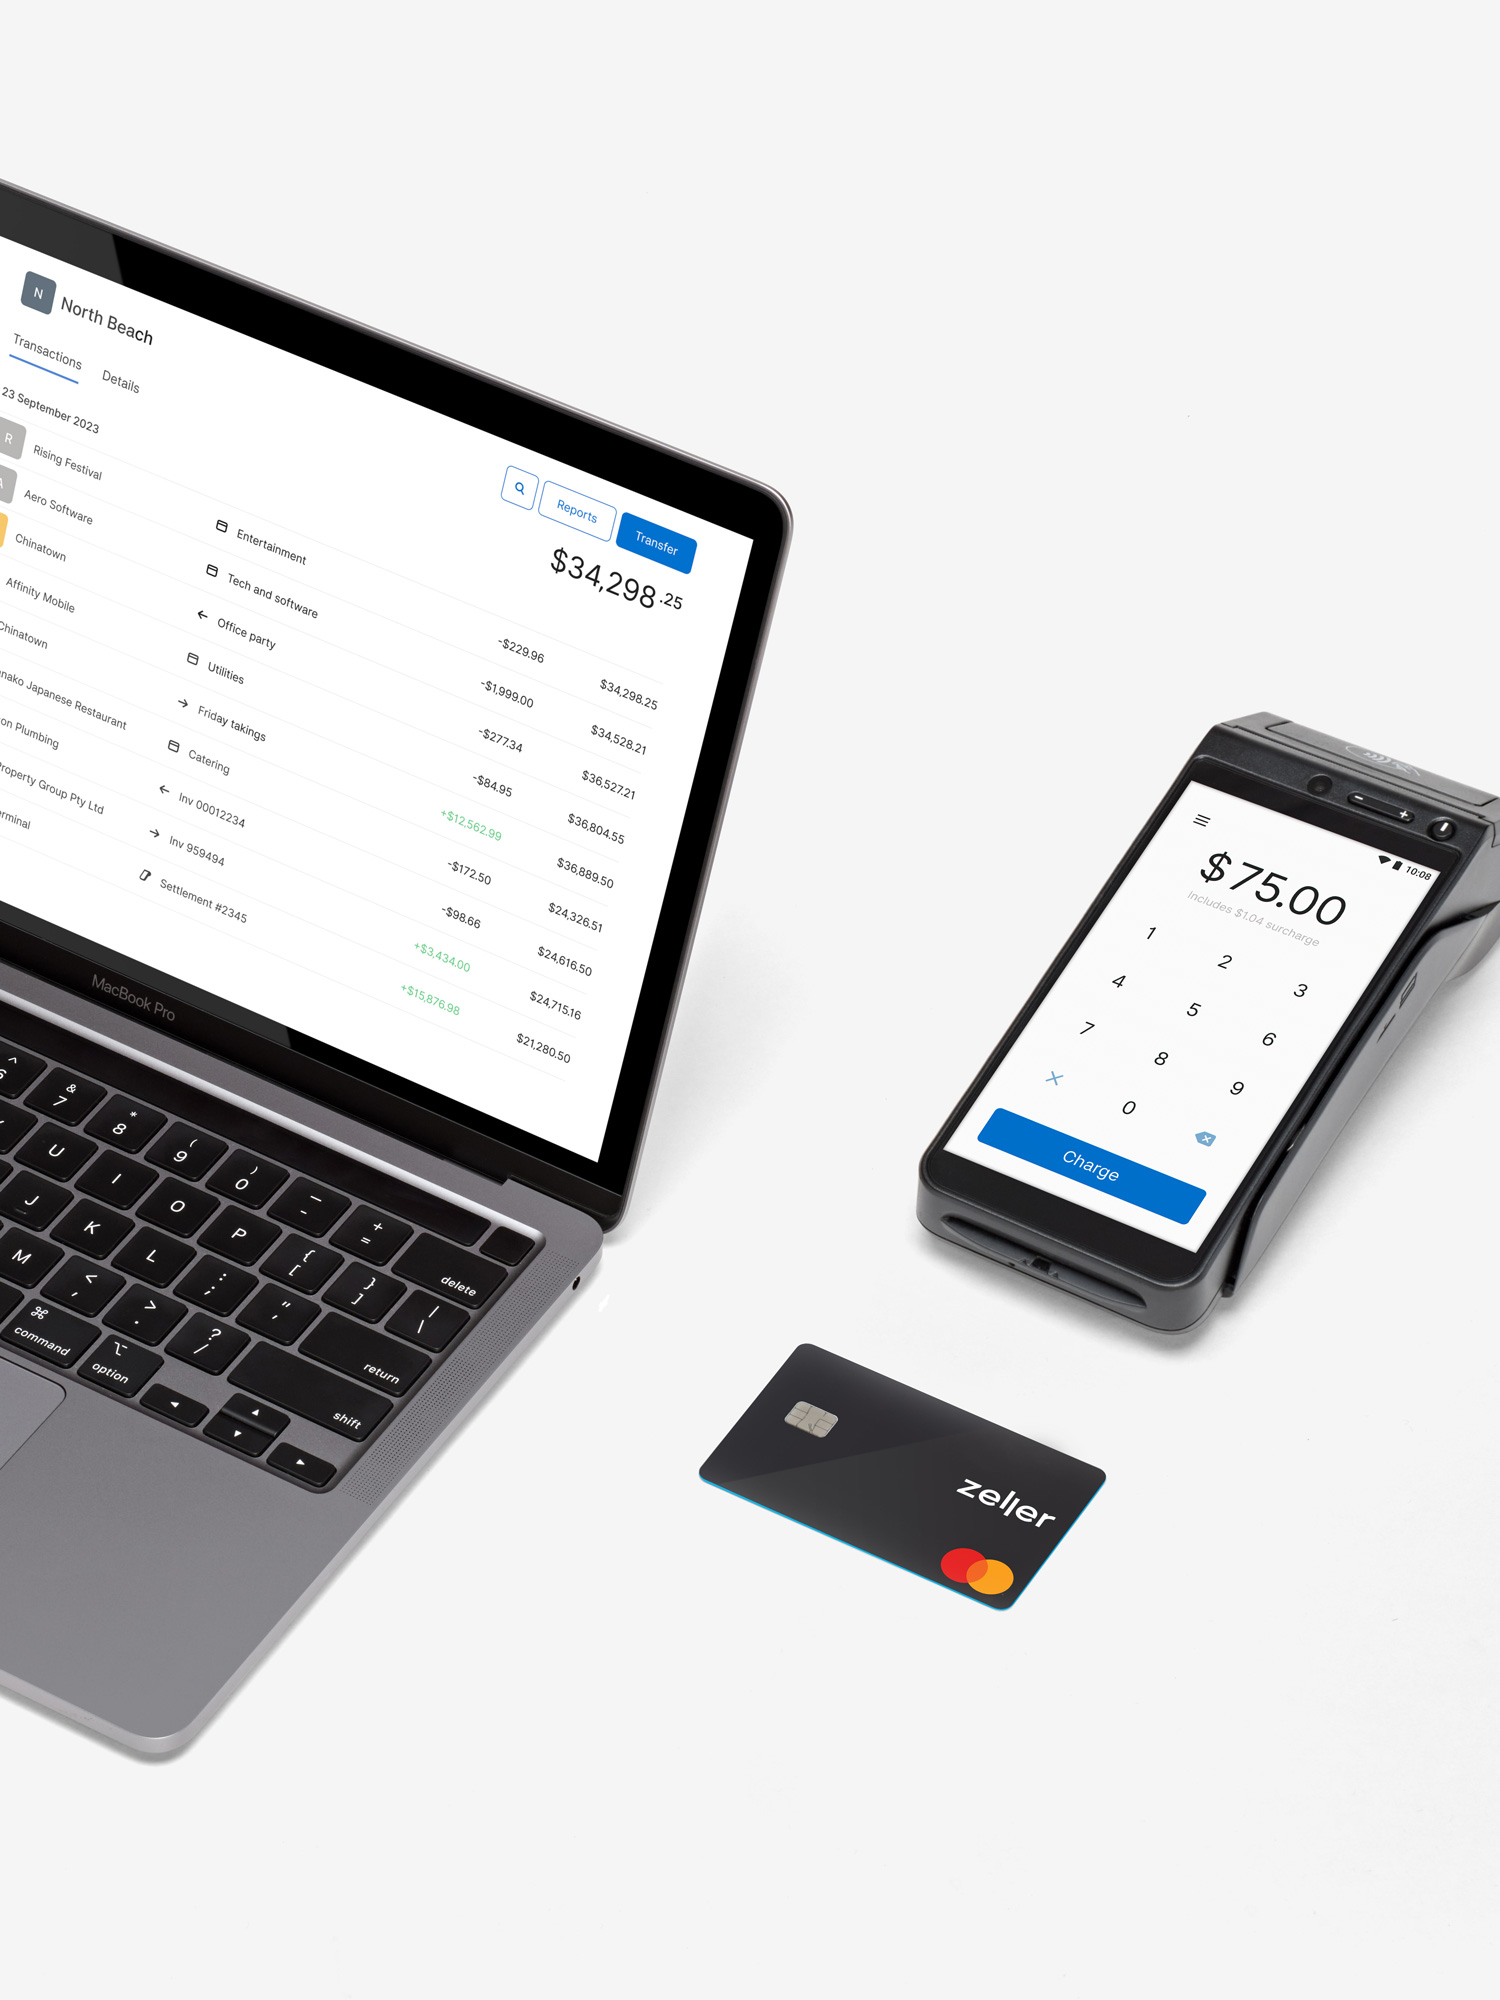 eftpos-terminal-business-bank-account-mastercard